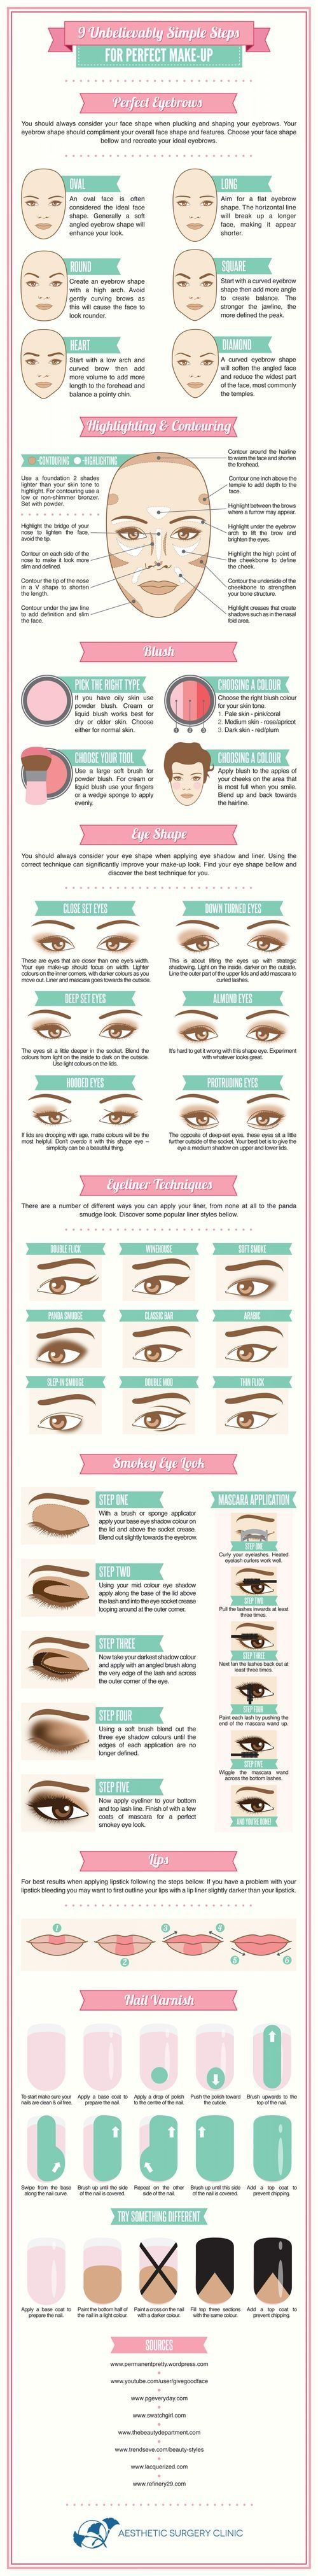 How to dress for your face                                                                                                                                                                                 More